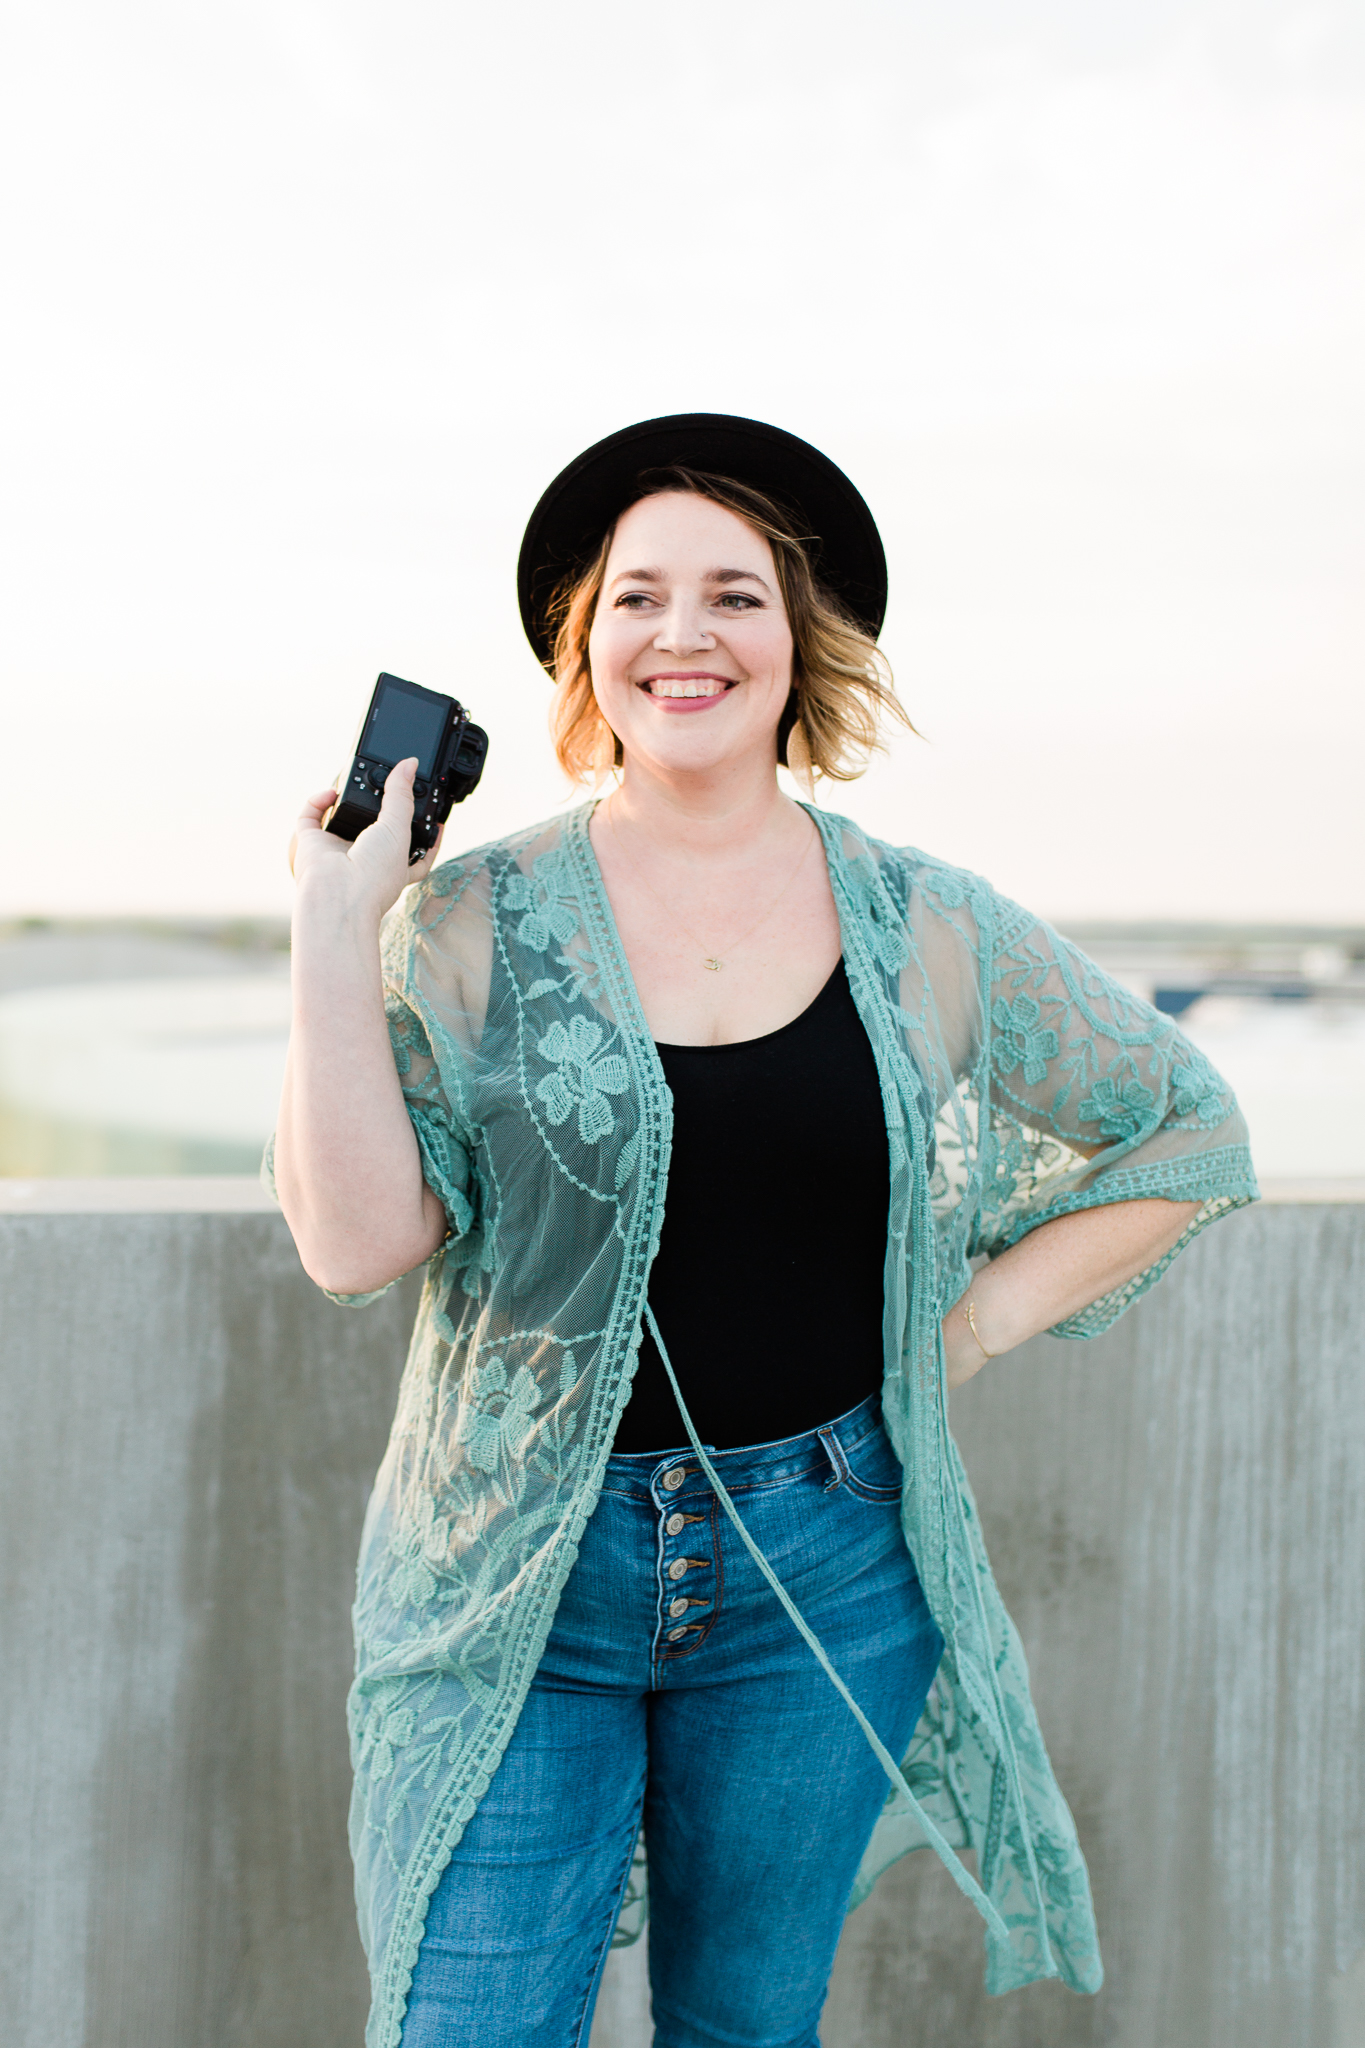 Photographer laughs on a rooftop at sunset, Kansas City candid portrait photographer, Rebecca Clair Photography